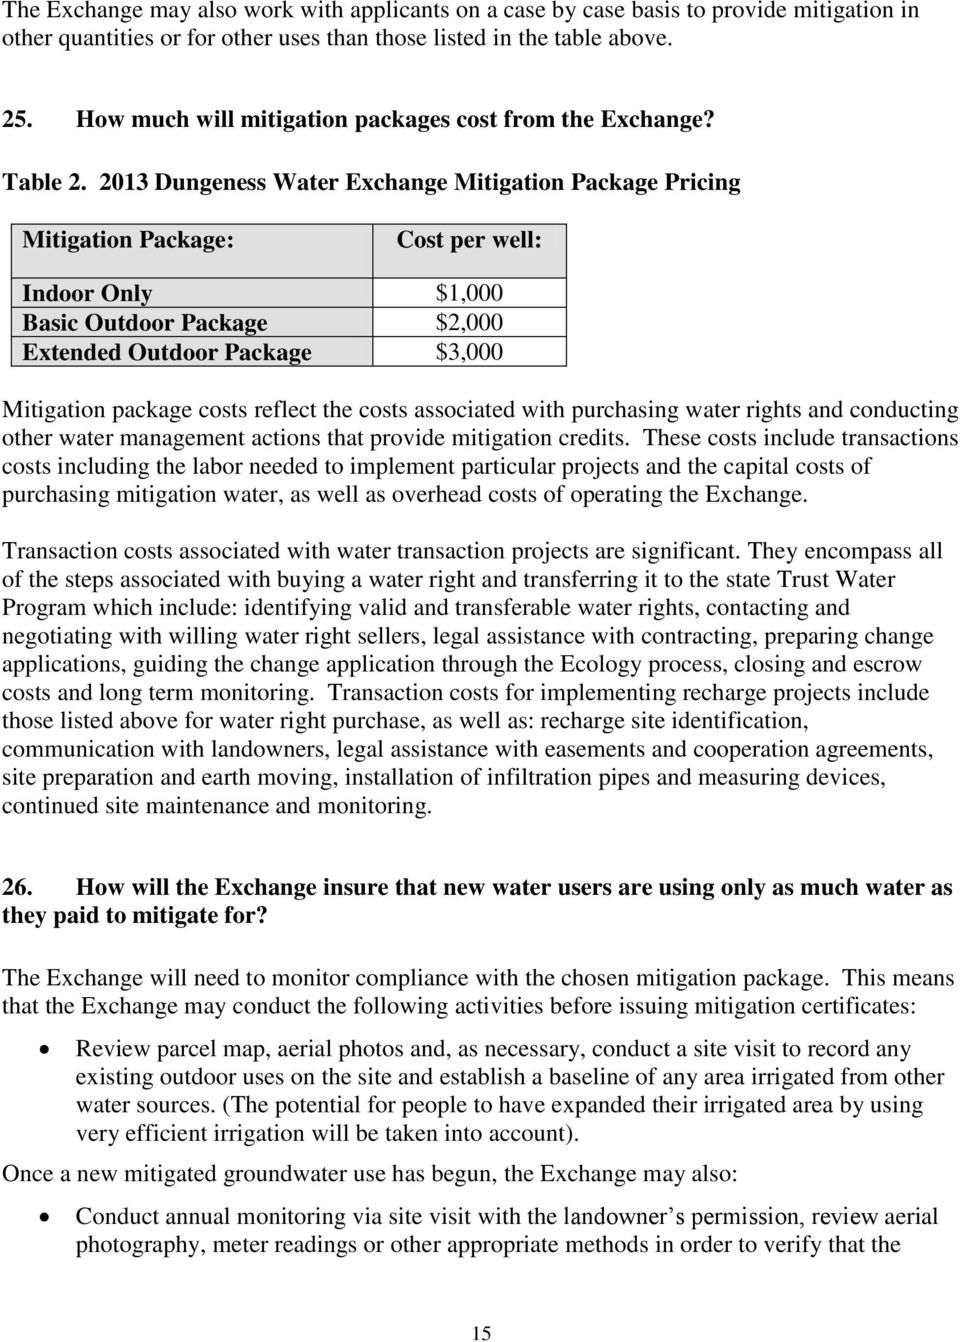 2013 Dungeness Water Exchange Mitigation Package Pricing Mitigation Package: Cost per well: Indoor Only $1,000 Basic Outdoor Package $2,000 Extended Outdoor Package $3,000 Mitigation package costs